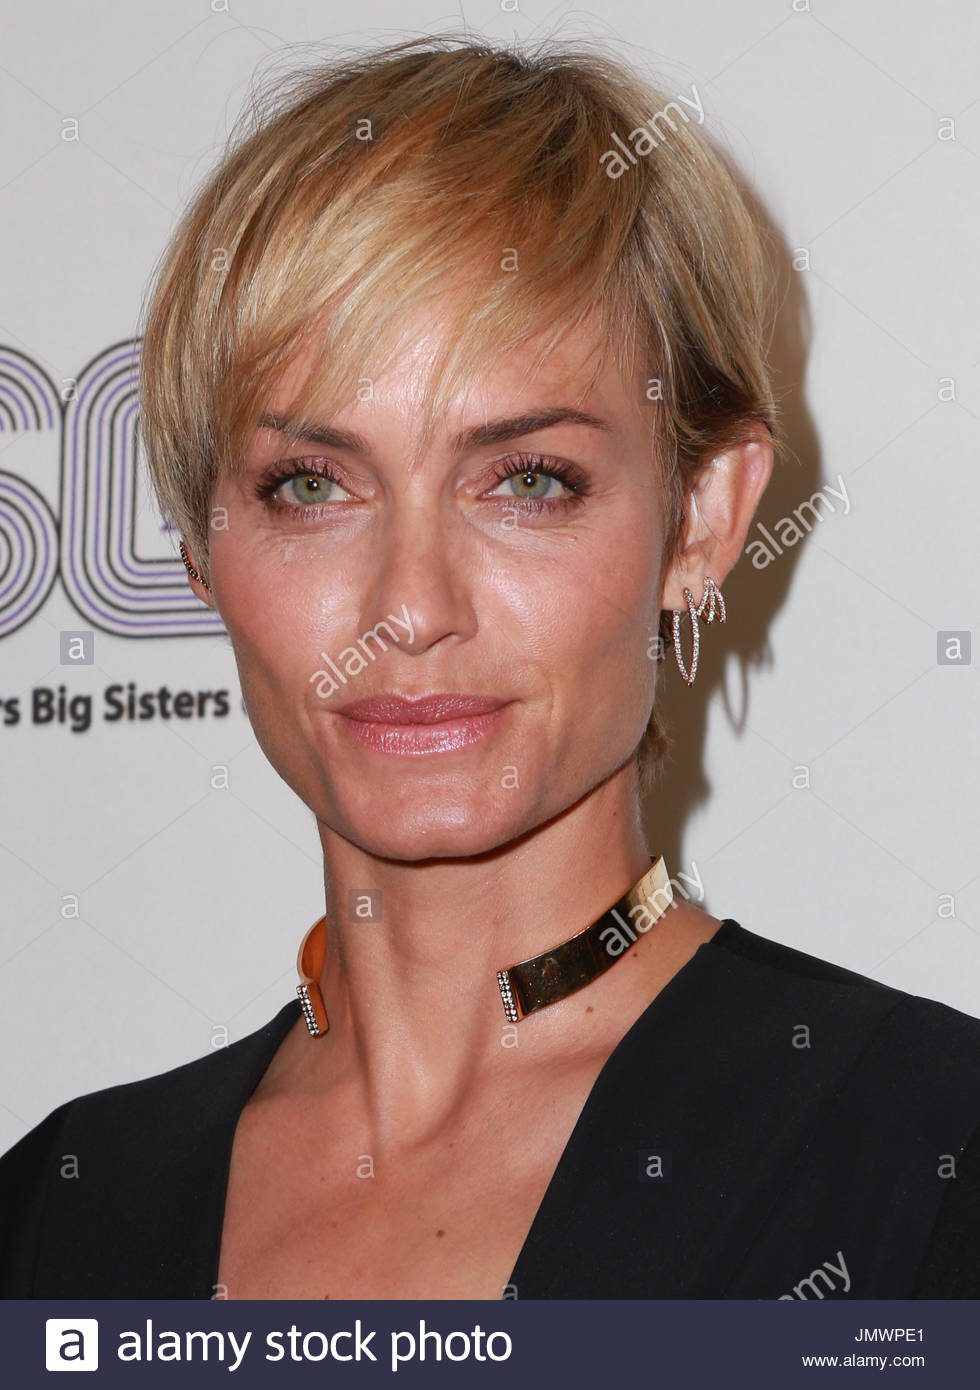 Cleavage Amber Valletta nudes (15 photos), Pussy, Leaked, Instagram, braless 2017